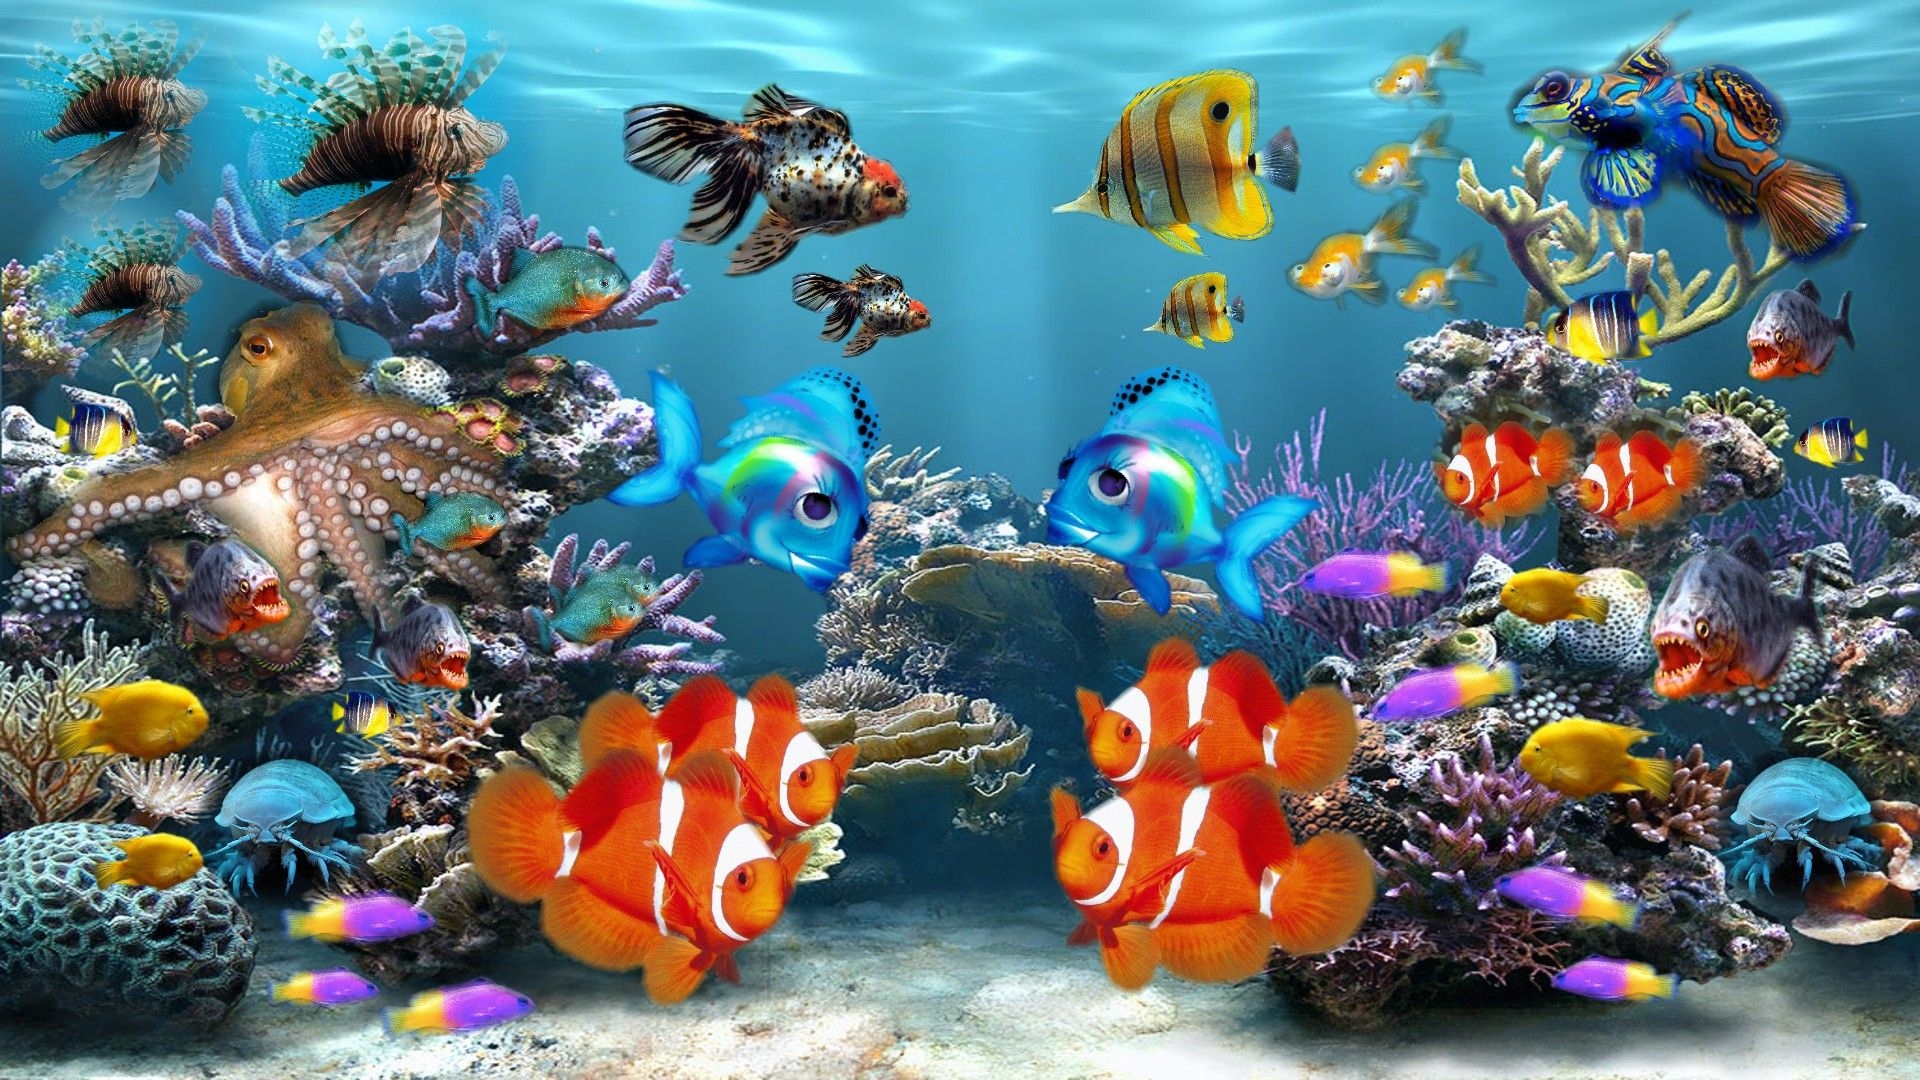 Fish Tank Moving Desktop Backgrounds Aquarium Colors Screensaver Aquarium Live Wallpaper Fish Wallpaper Aquarium Backgrounds